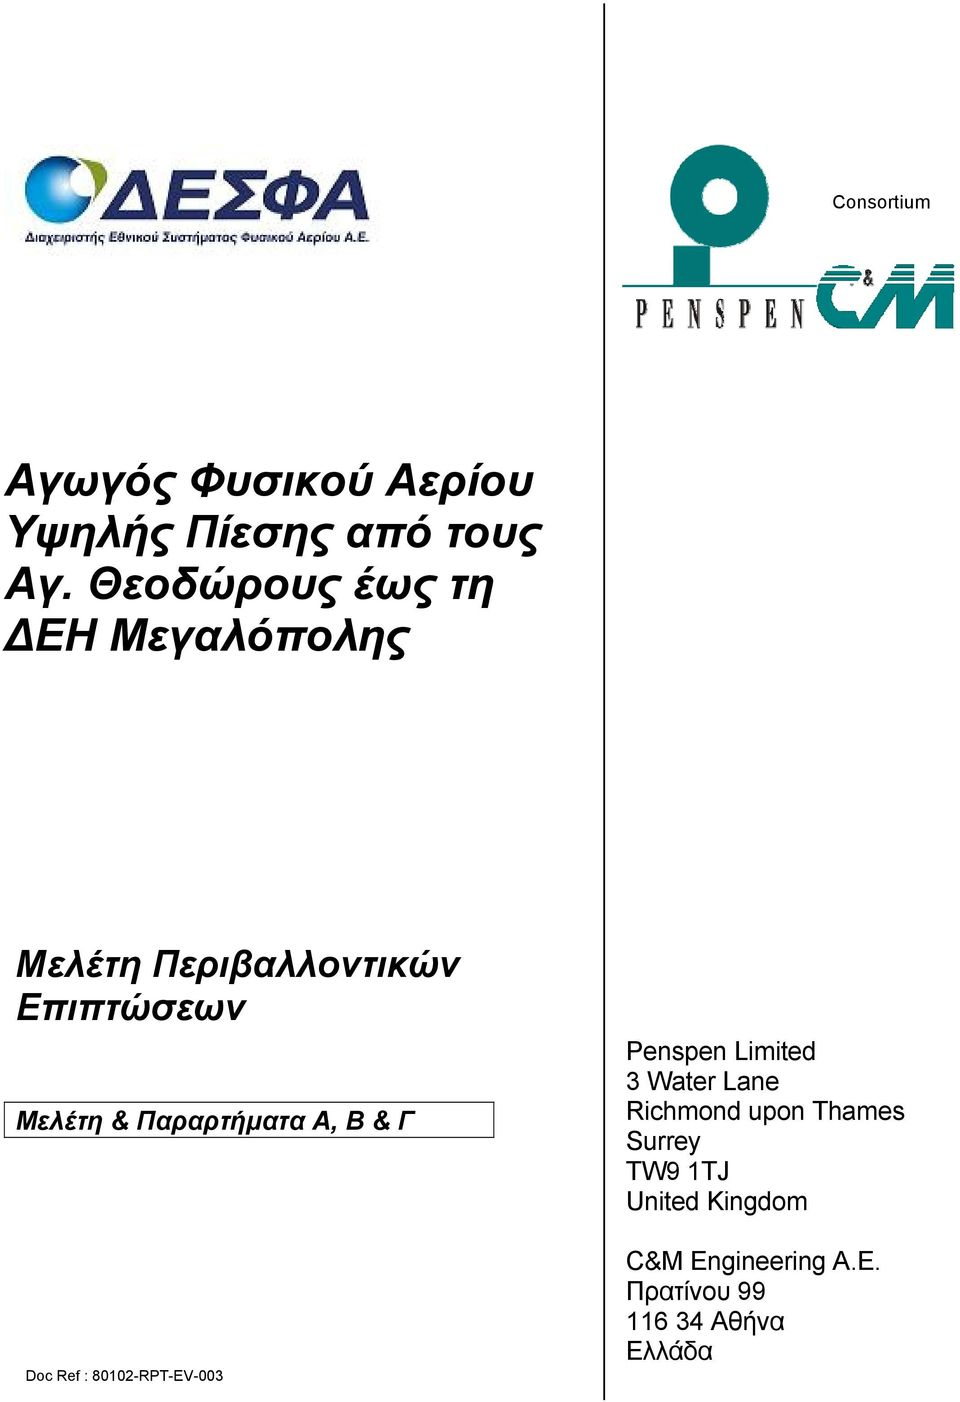 Παραρτήματα Α, Β & Γ Doc Ref : 80102-RPT-EV-003 Penspen Limited 3 Water Lane